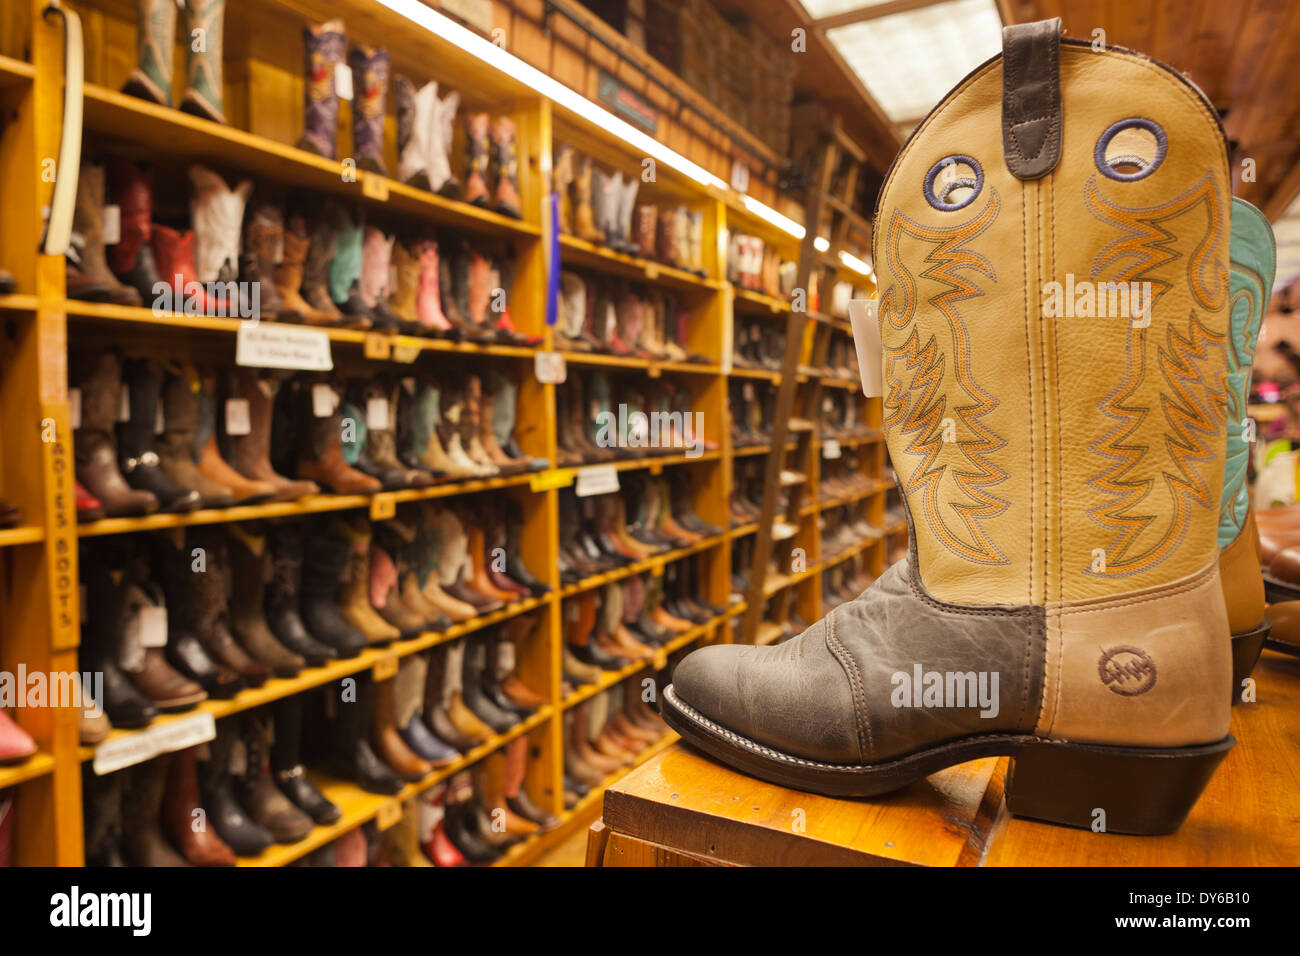 Western Store Cowboy Boots Stock Photos & Western Store Cowboy ...